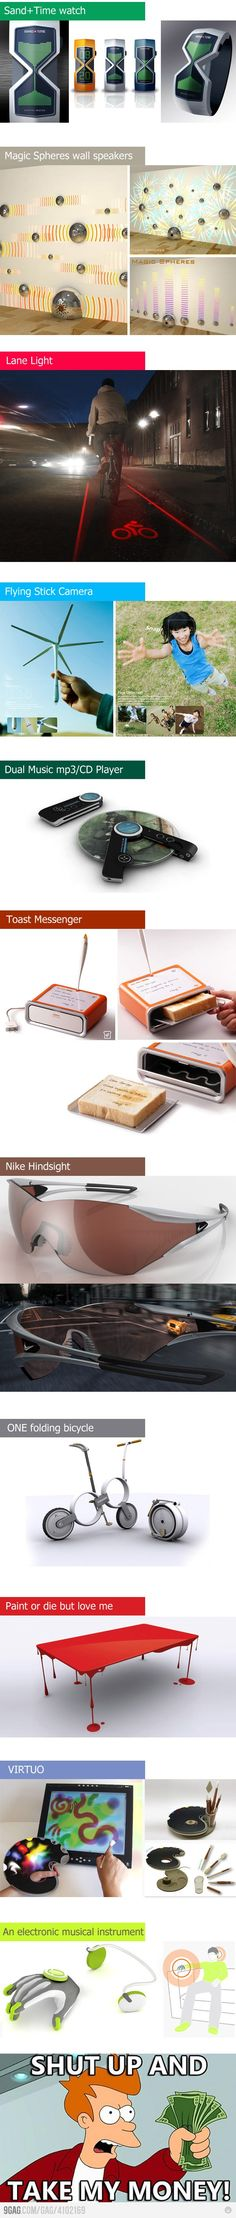 gadgets, shut up and take my money